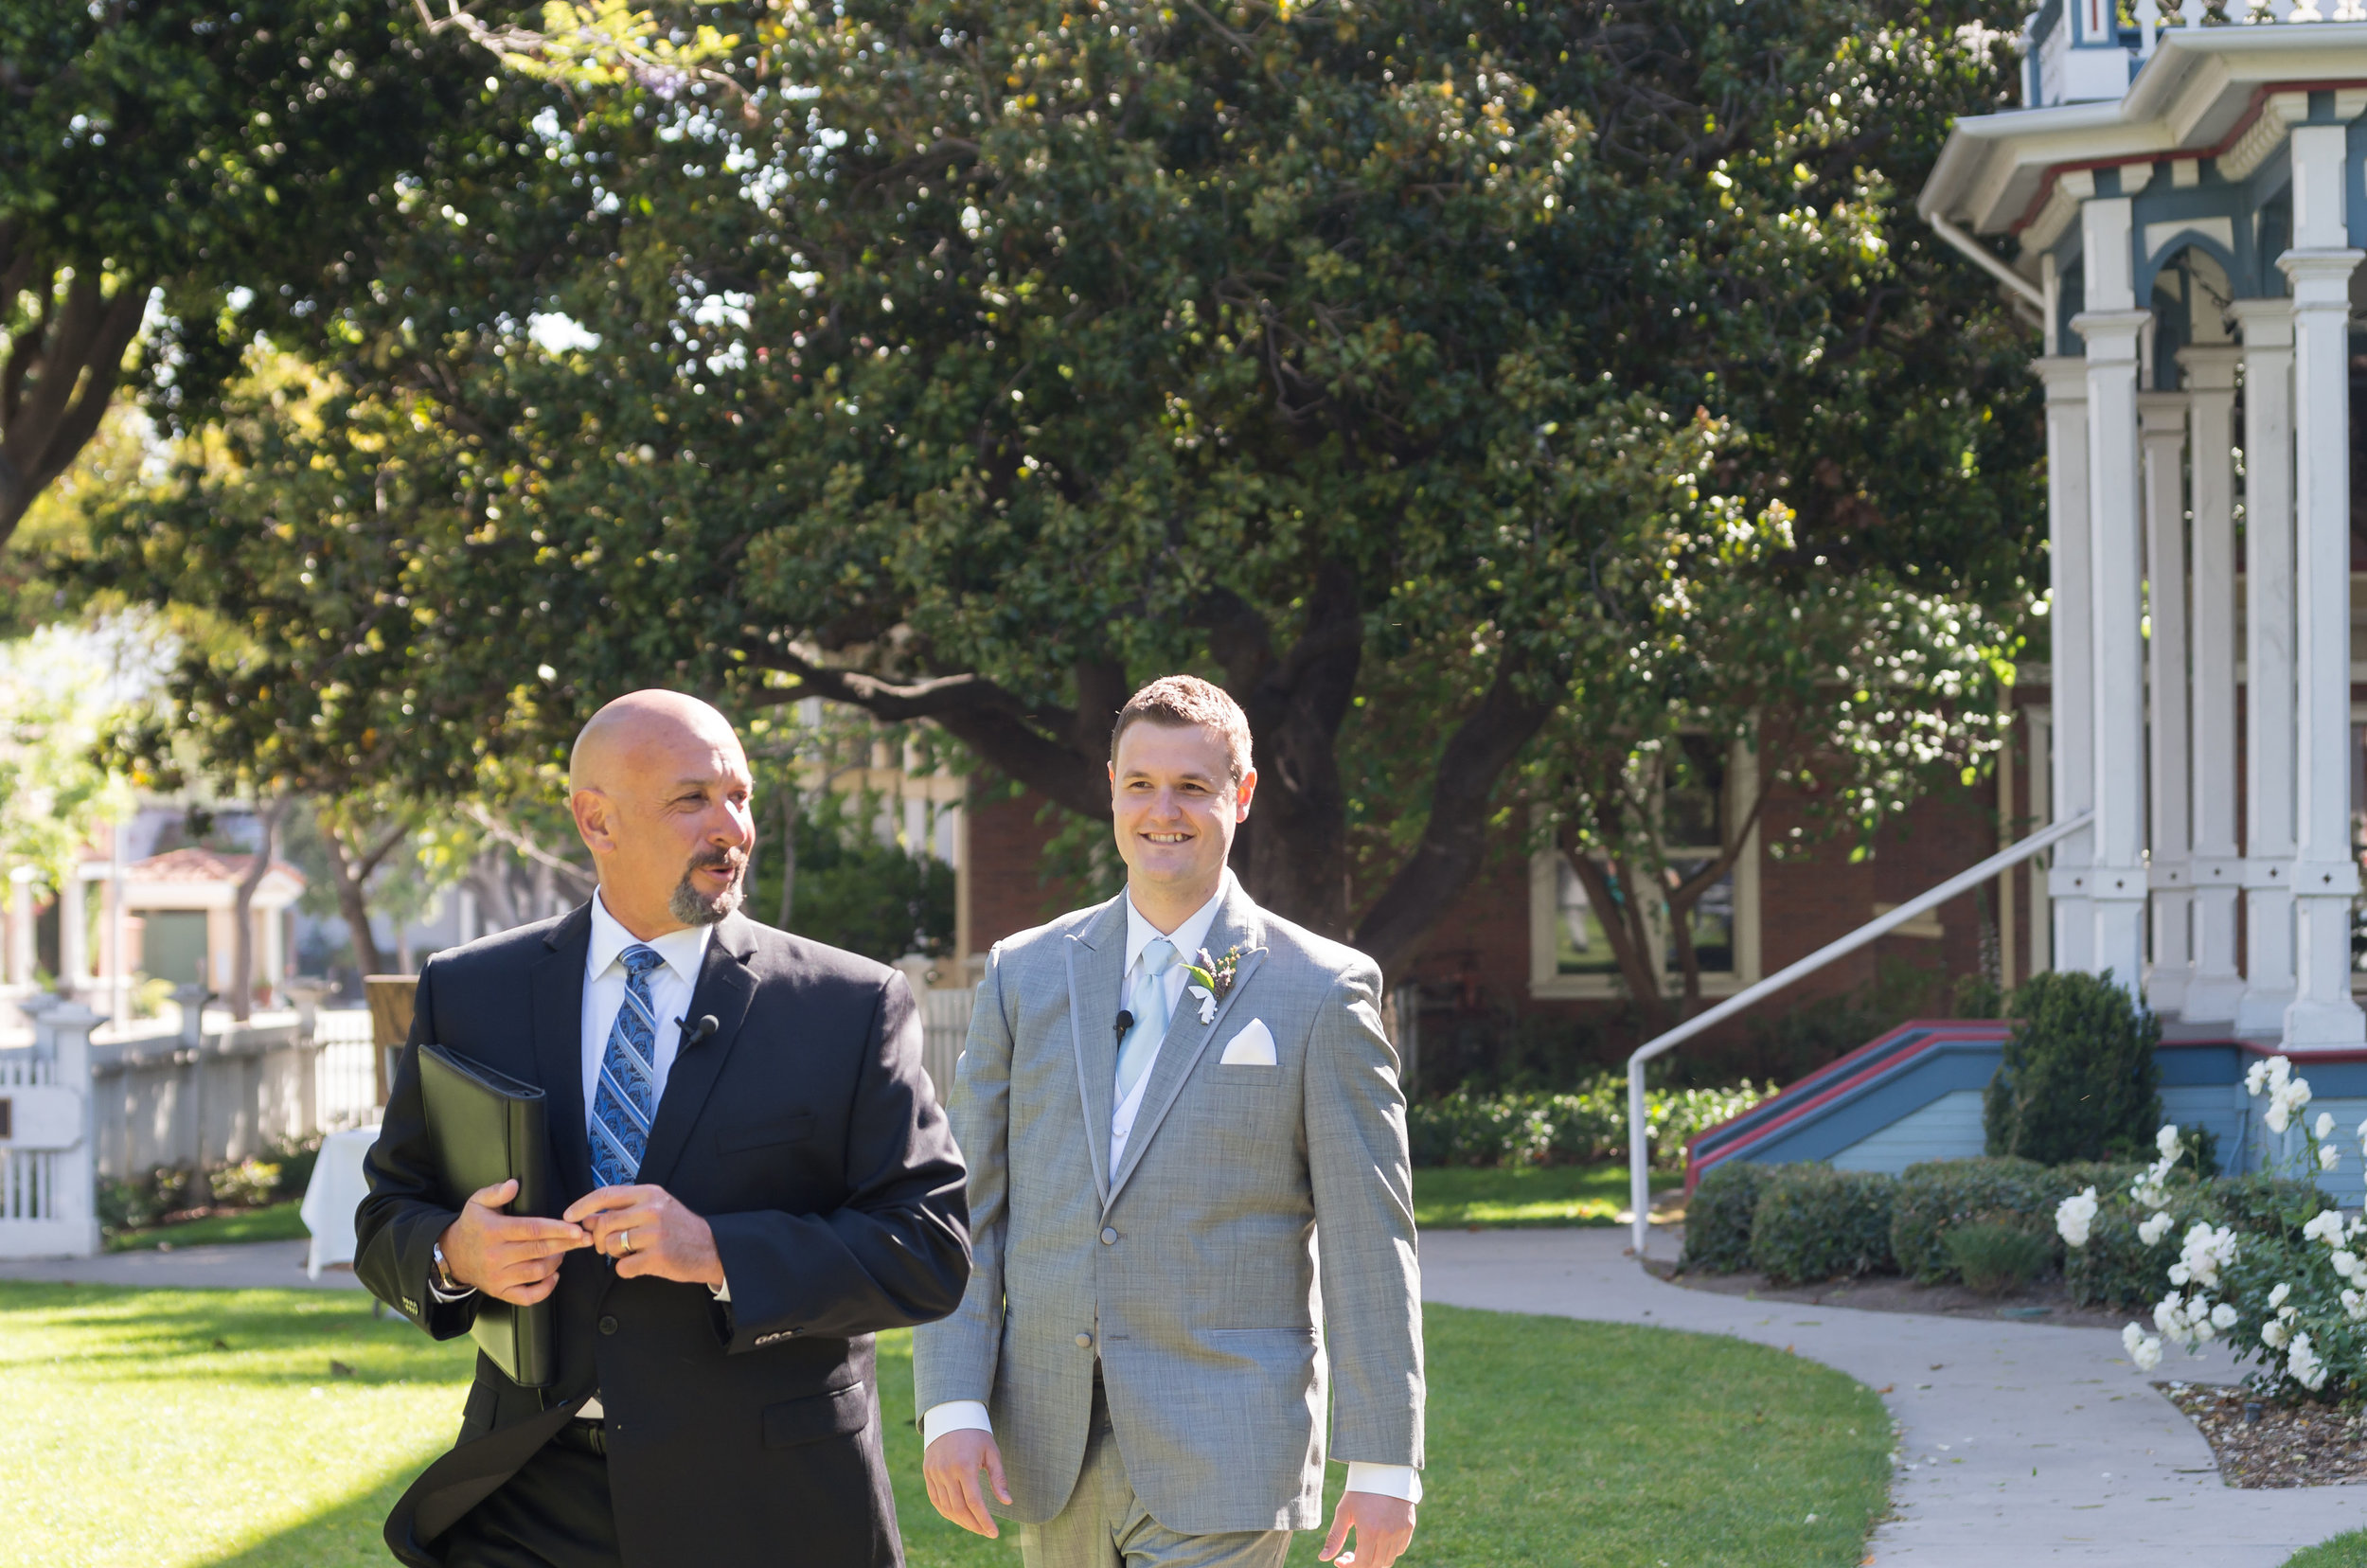 walking the groom.JPG